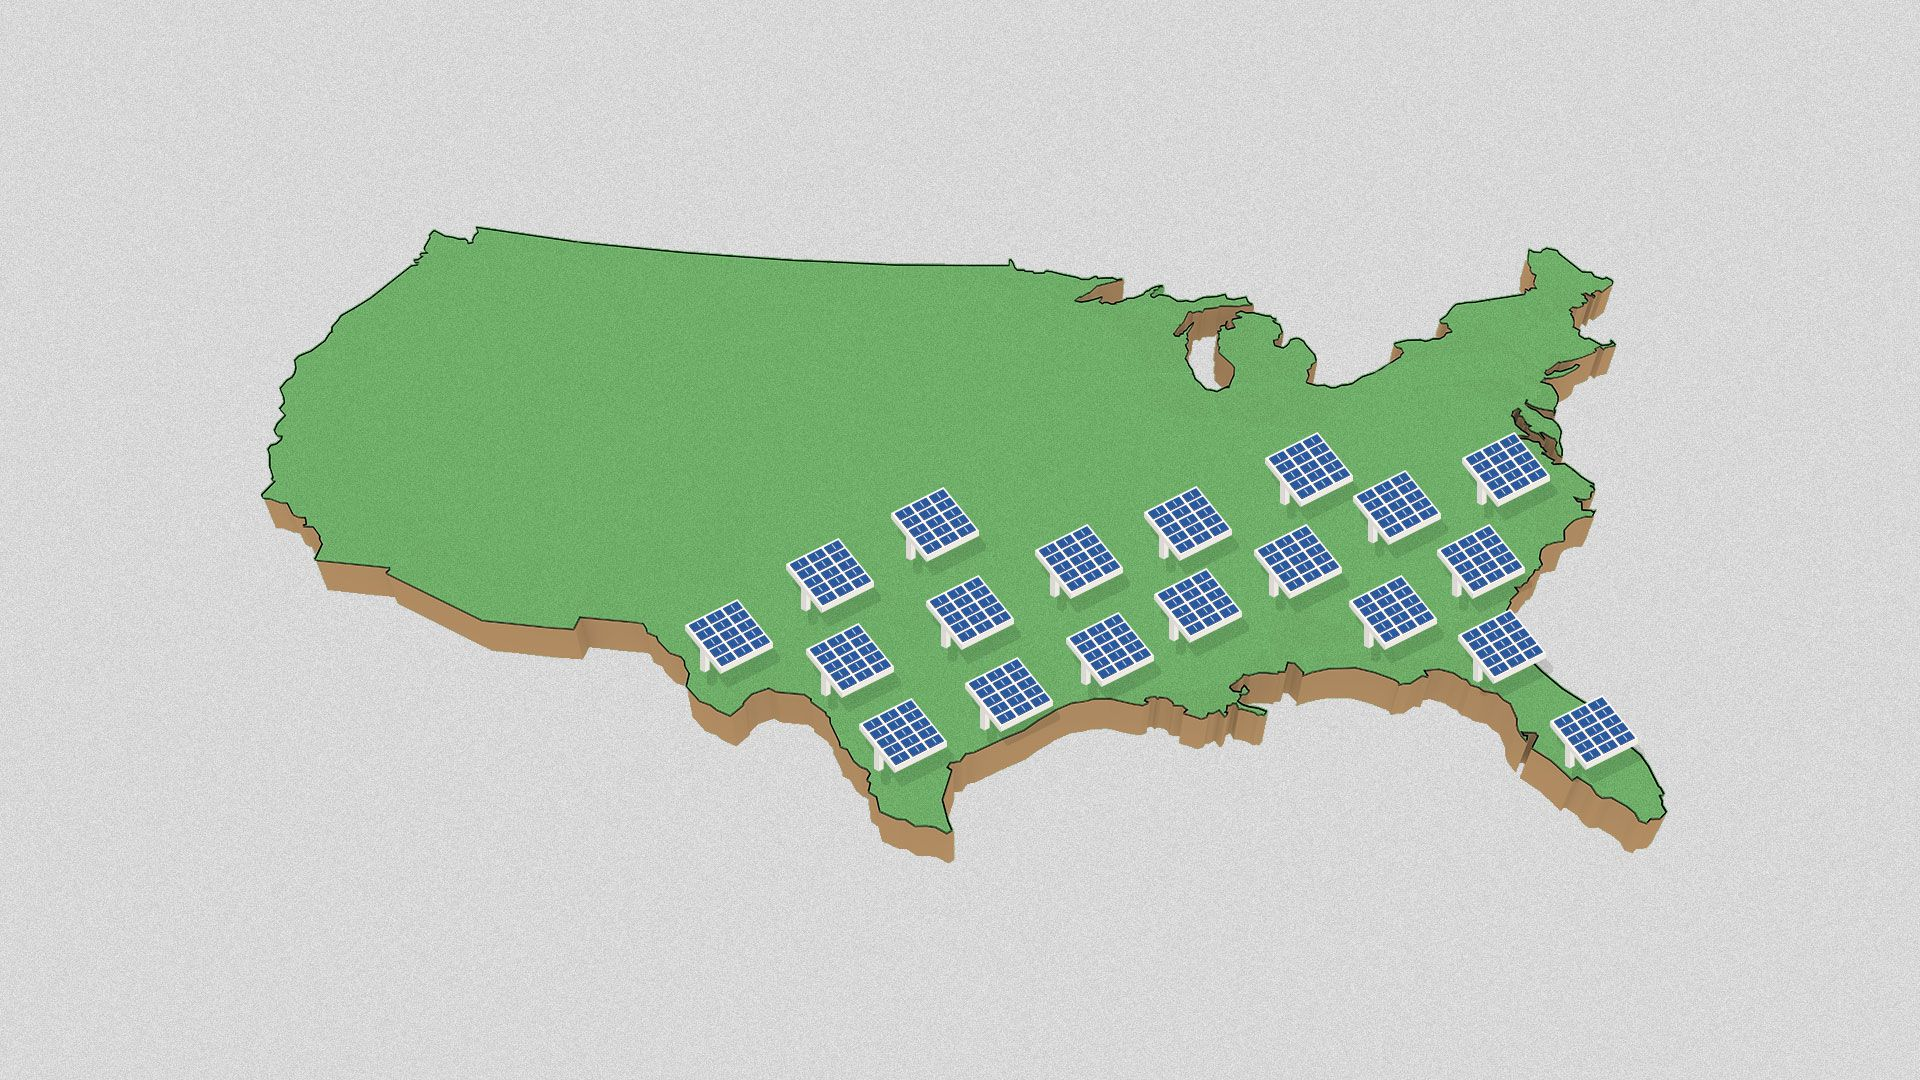 Southern states lead 2019's stock market rally for solar power